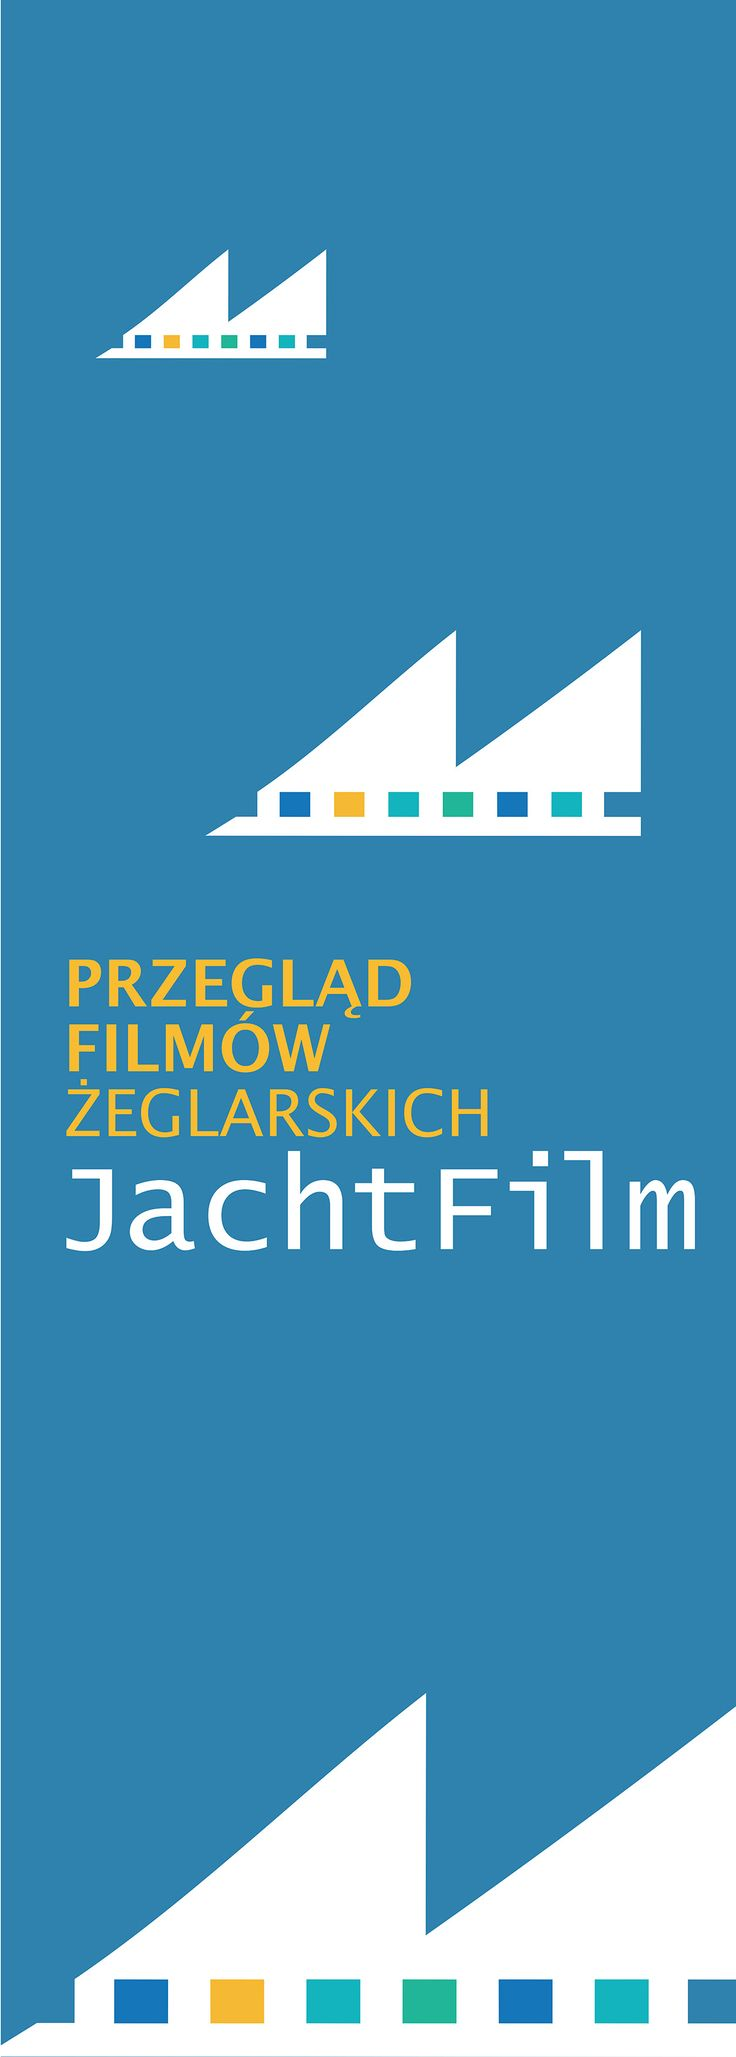 JachtFilm Festiwal 2013 / roll up